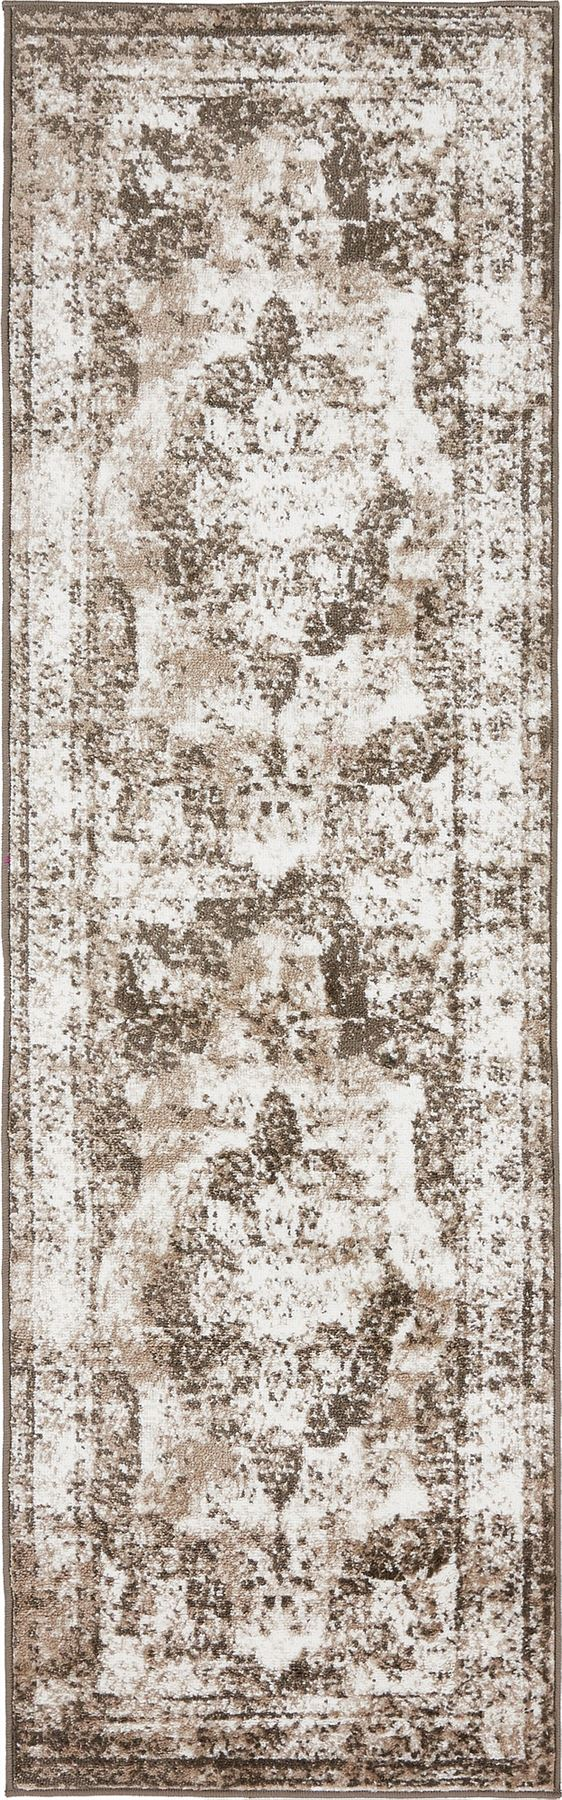 Traditional-Inspired-Persian-Faded-Transitional-Area-Rug-Multi-Color-ALL-SIZES thumbnail 32